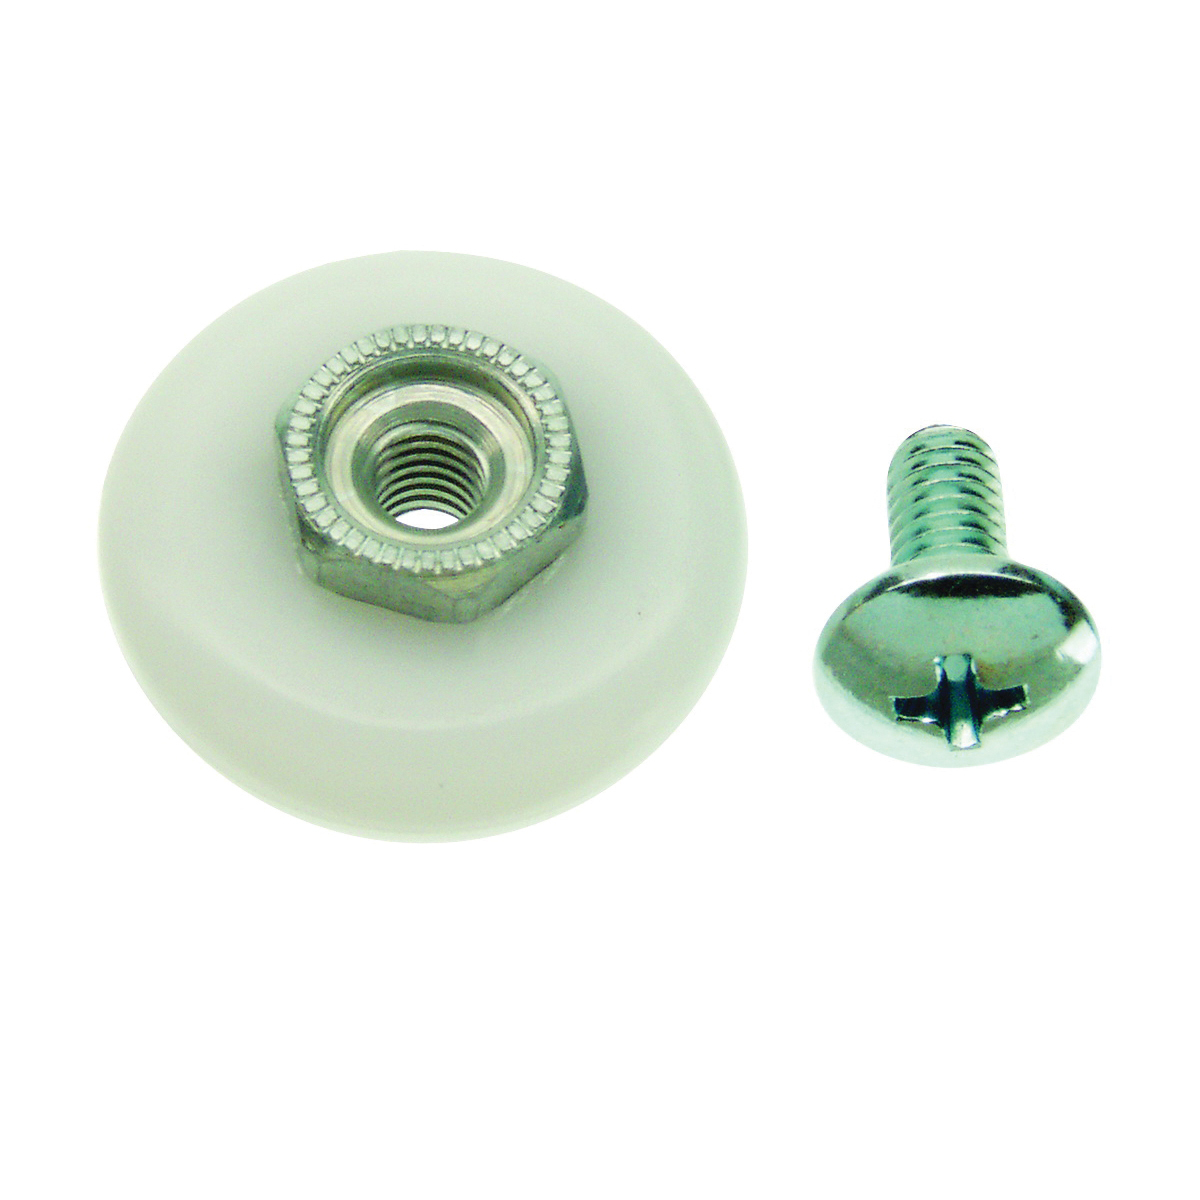 Picture of Danco 64654B Door Roller, Nylon, For: Shower Doors